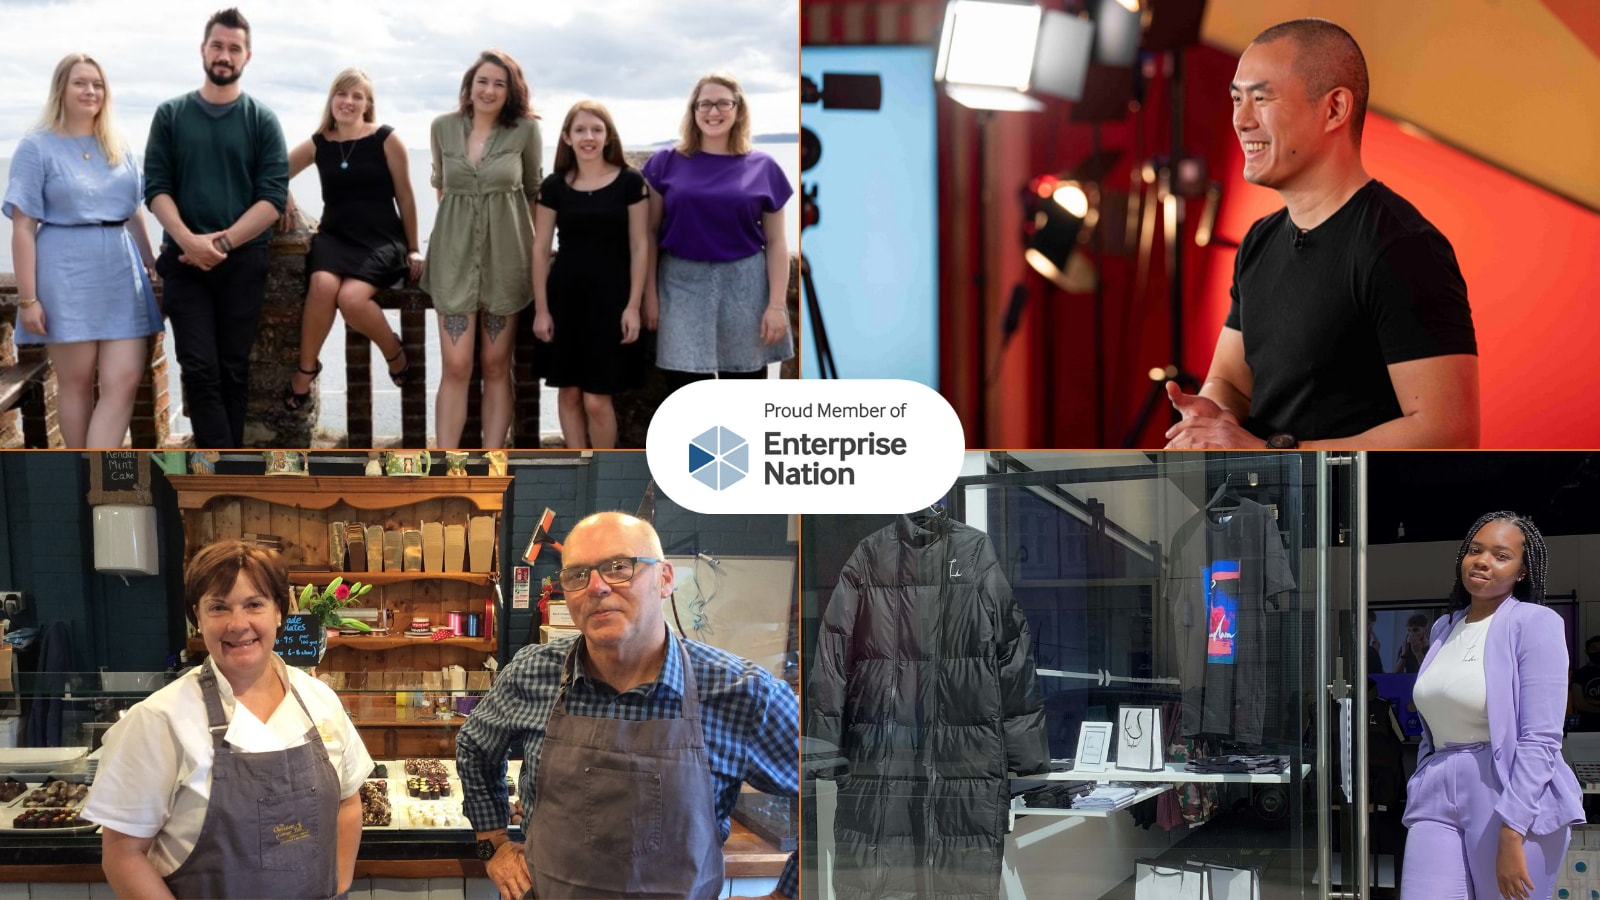 More small wins from the Enterprise Nation community